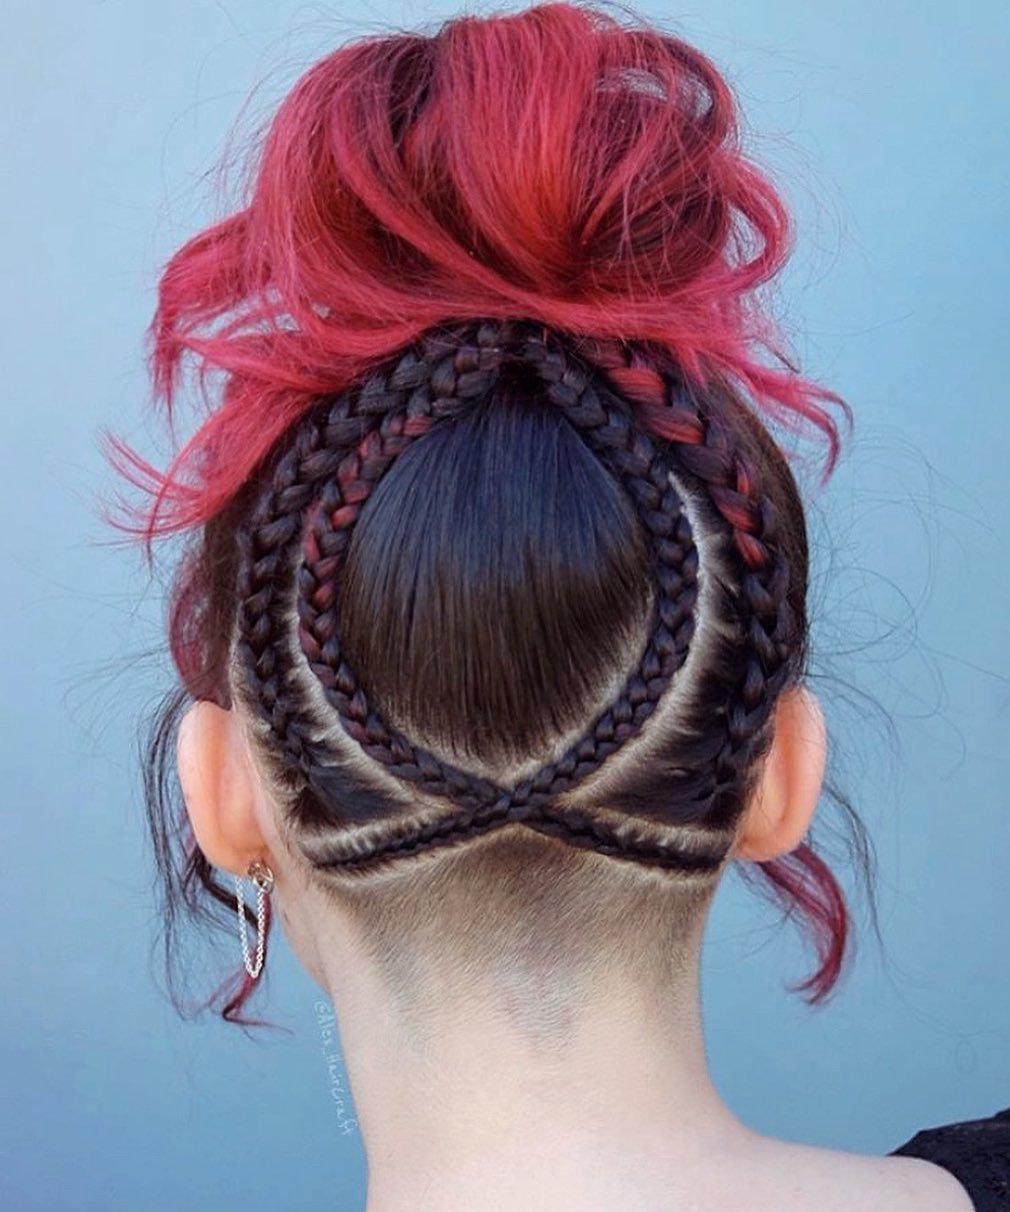 Updo with Braids and Nape Undercut